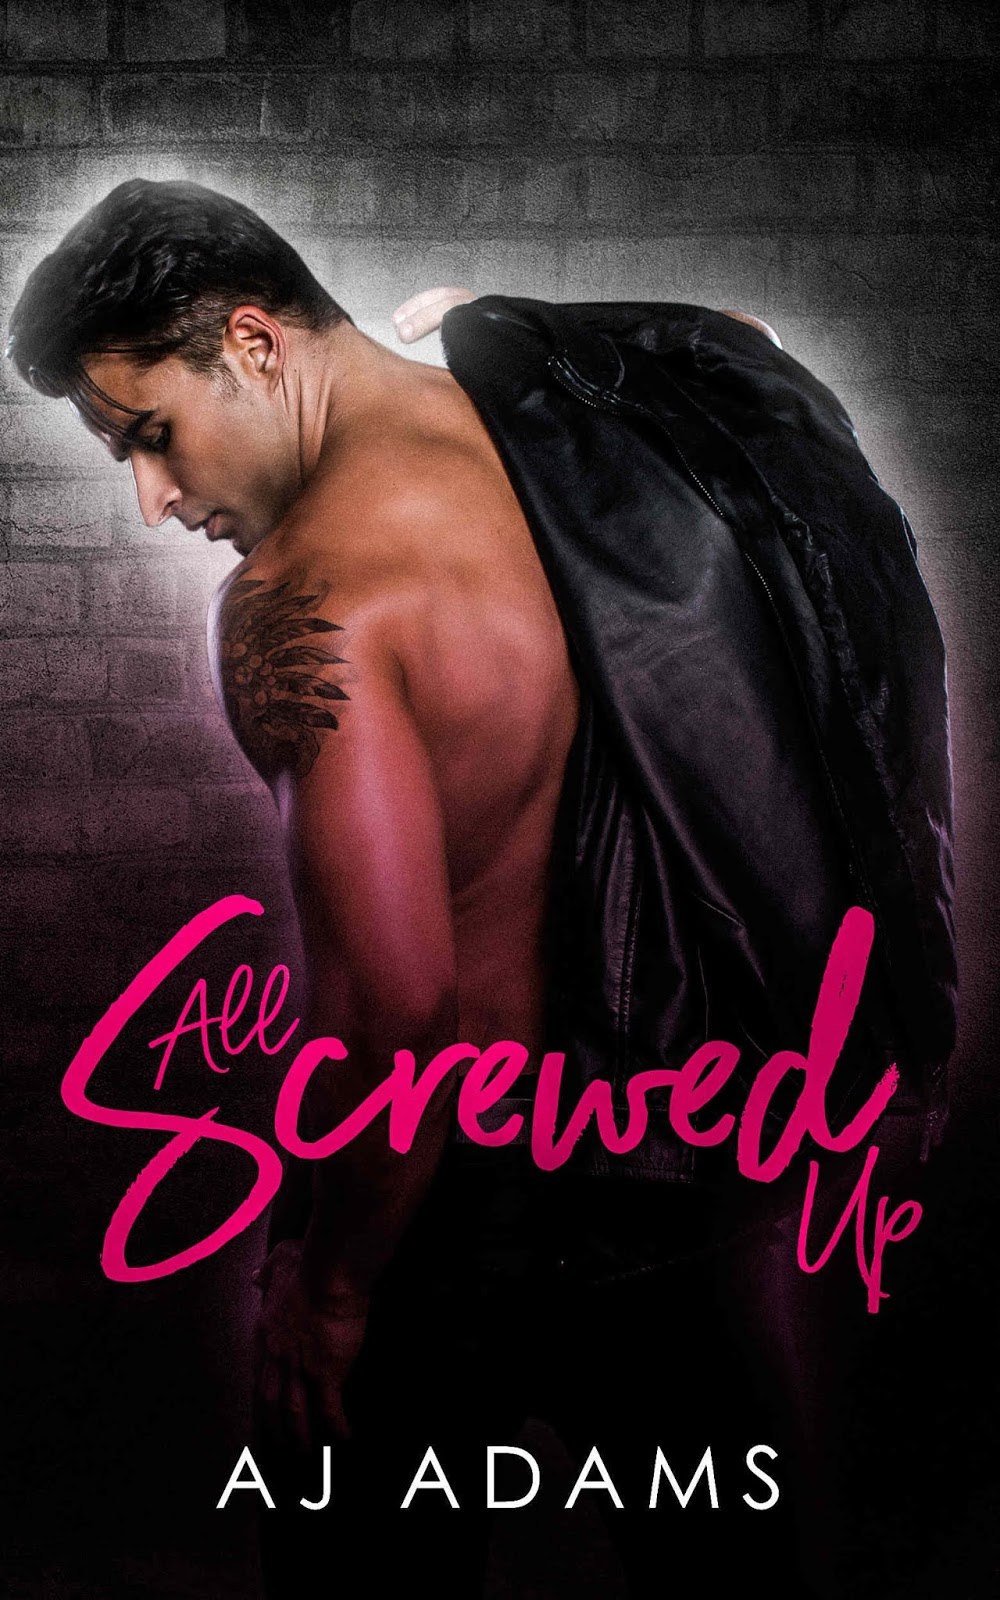 All Screwed Up by AJ Adams cover